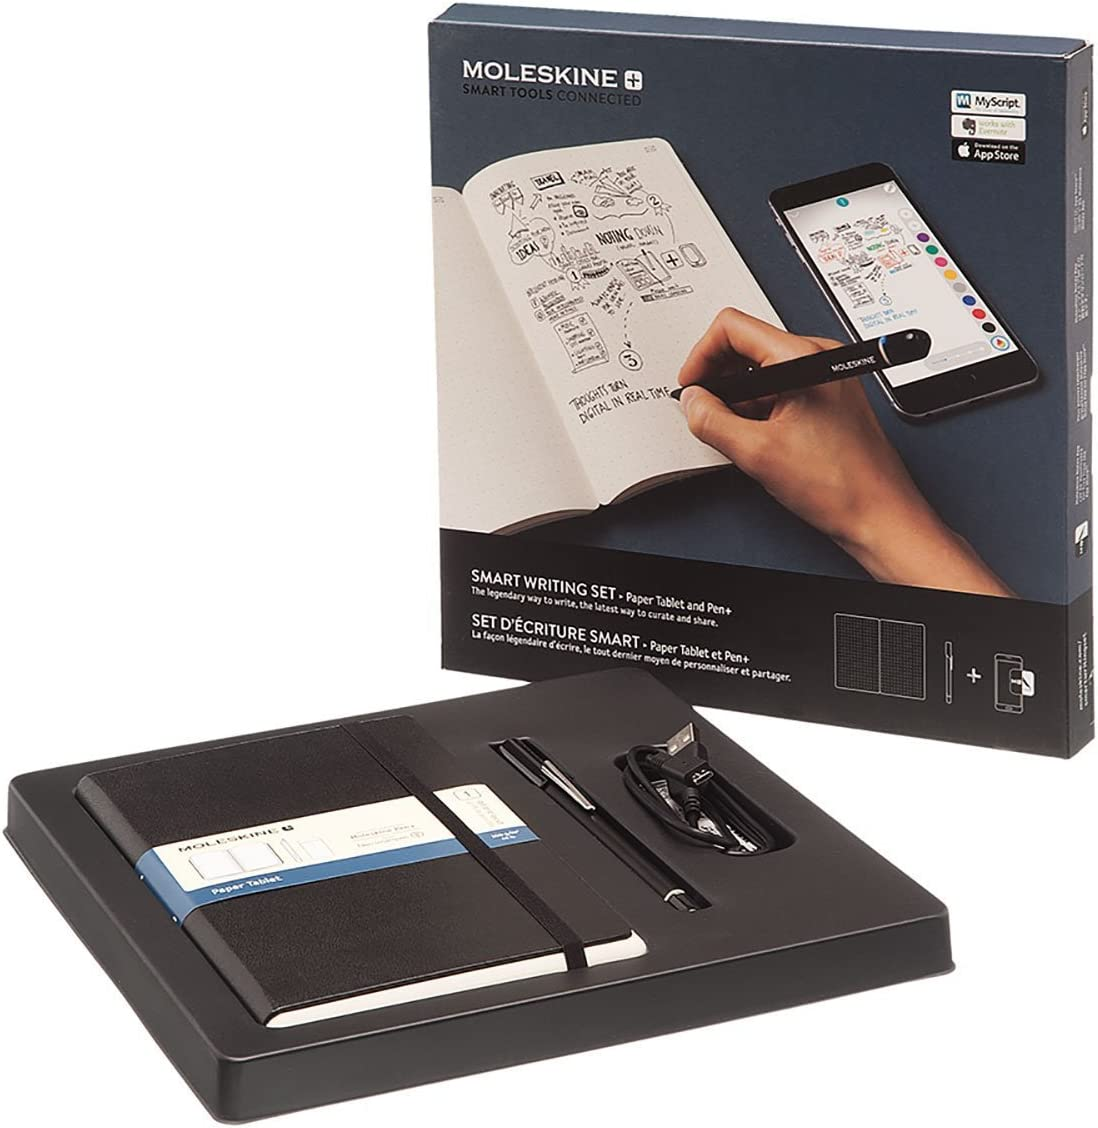 Moleskine Smart Writing Set Notebook And Pen Smartpen Notebook With Black Hard Cover Suitable To Use With Pen Moleskine Black Color Dotted Sheets Moleskine Amazon Co Uk Office Products